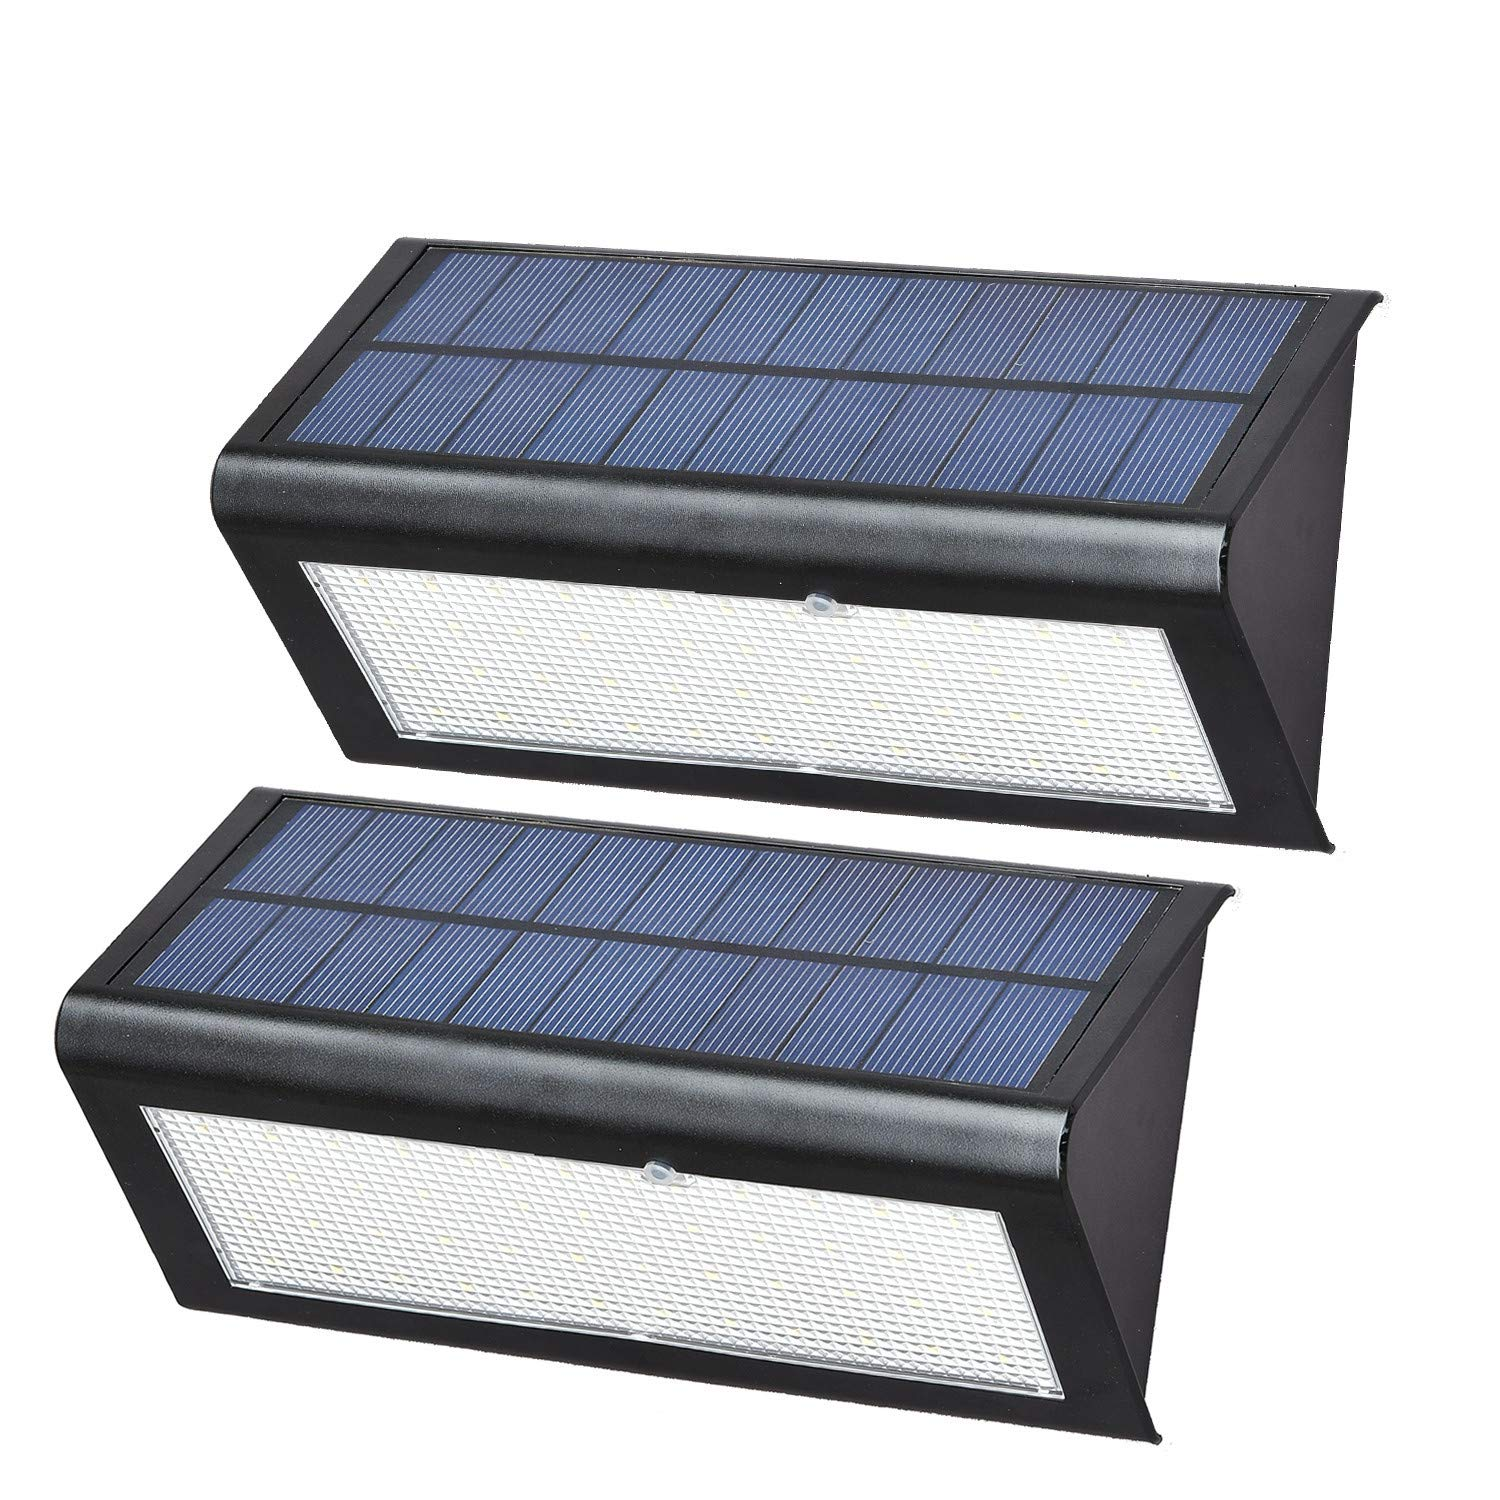 THINKIDEA 48 LED Solar Lights Outdoor,Super Bright 360 Radar Induction 4 Modes Switch Wireless Waterproof Solar Powered Security Lights for Wall Yard Garden Driveway Pathway Pool (Pack of 2) by THINKIDEA